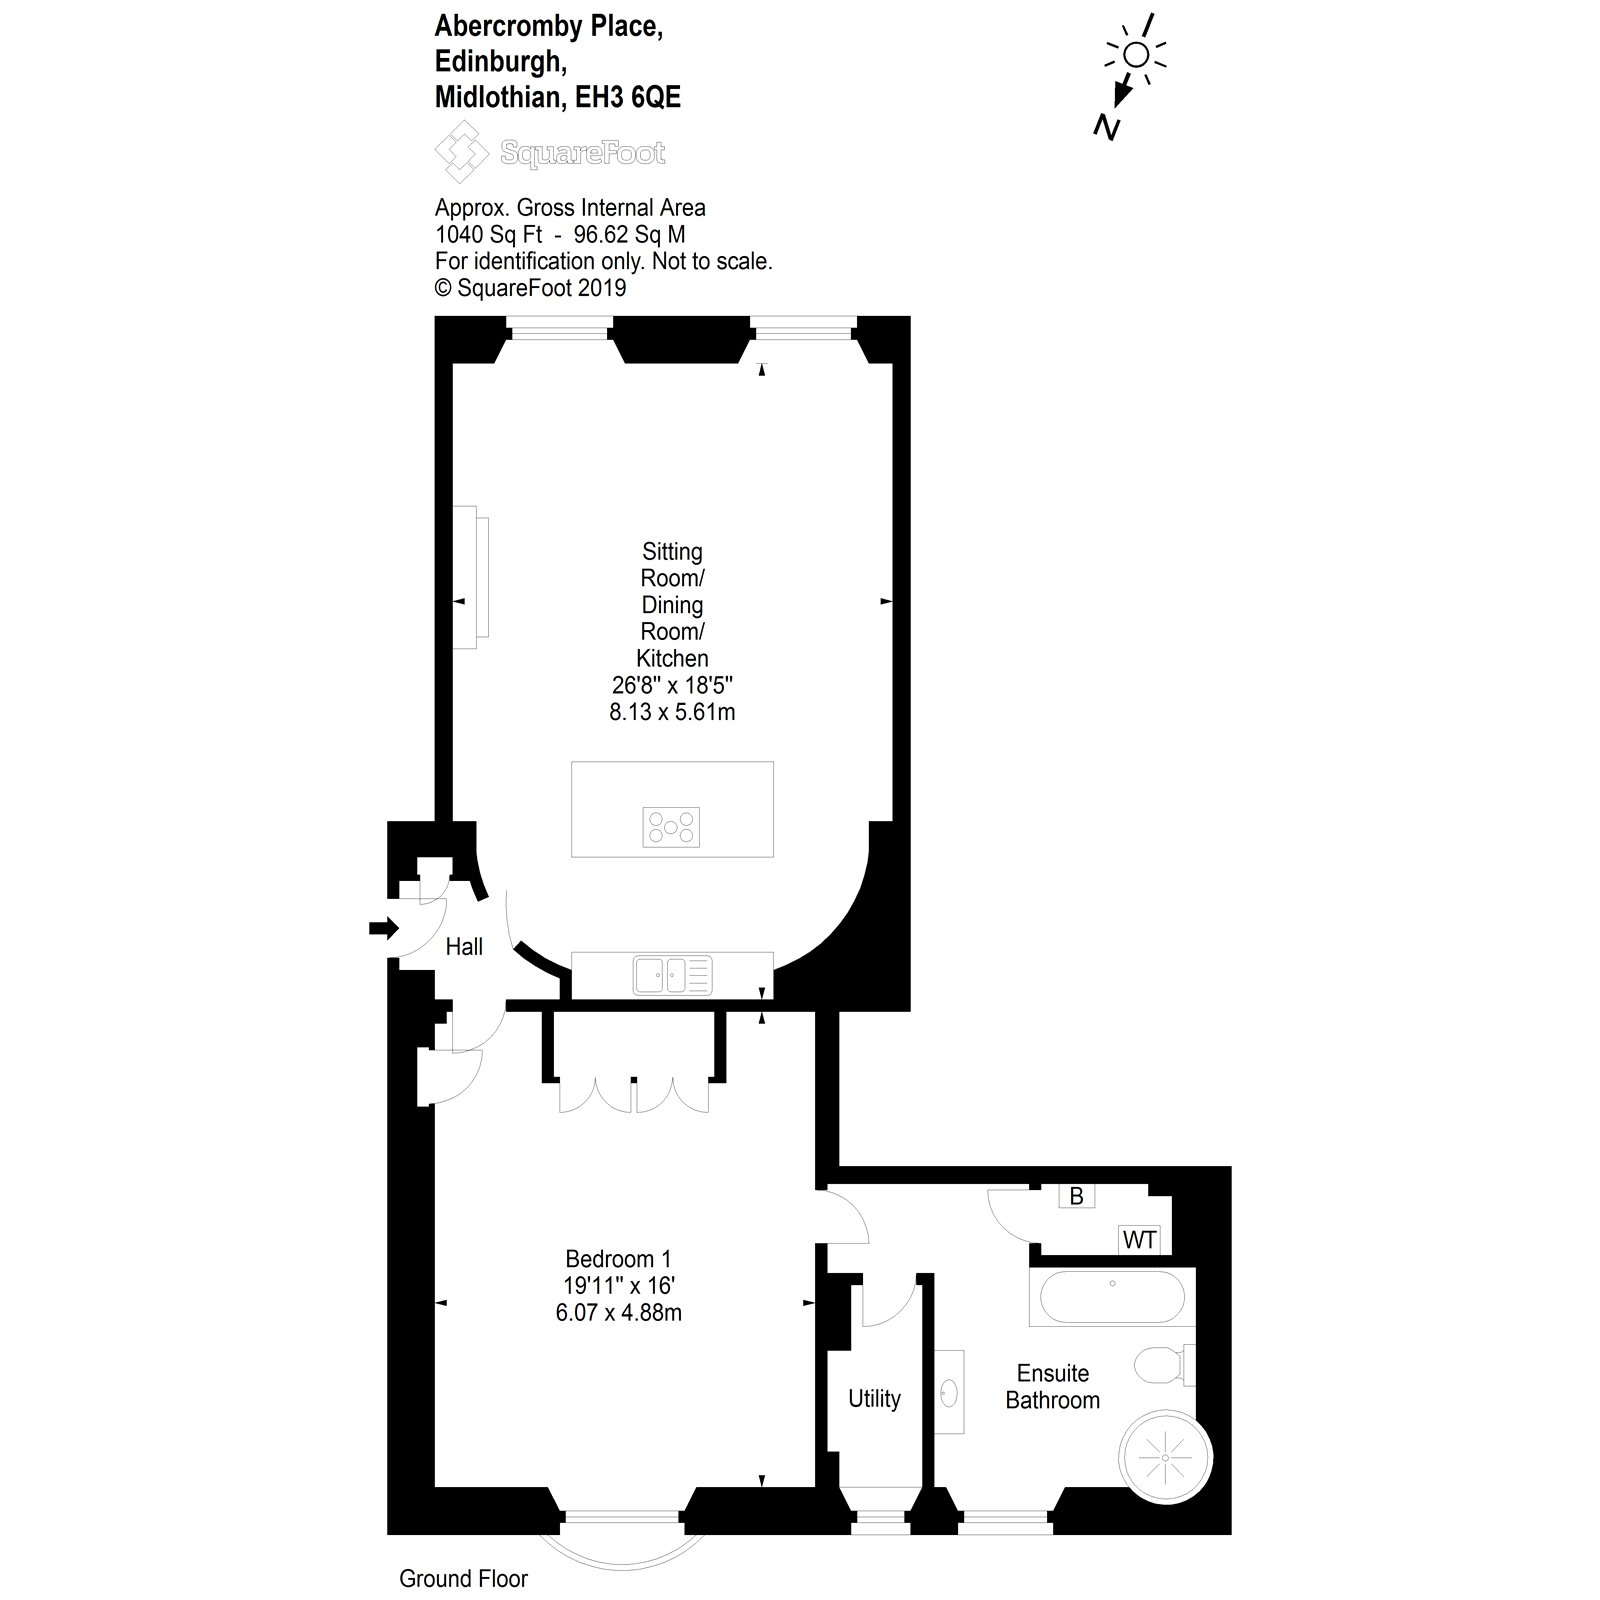 Floorplans for Abercromby Place, Edinburgh, EH3